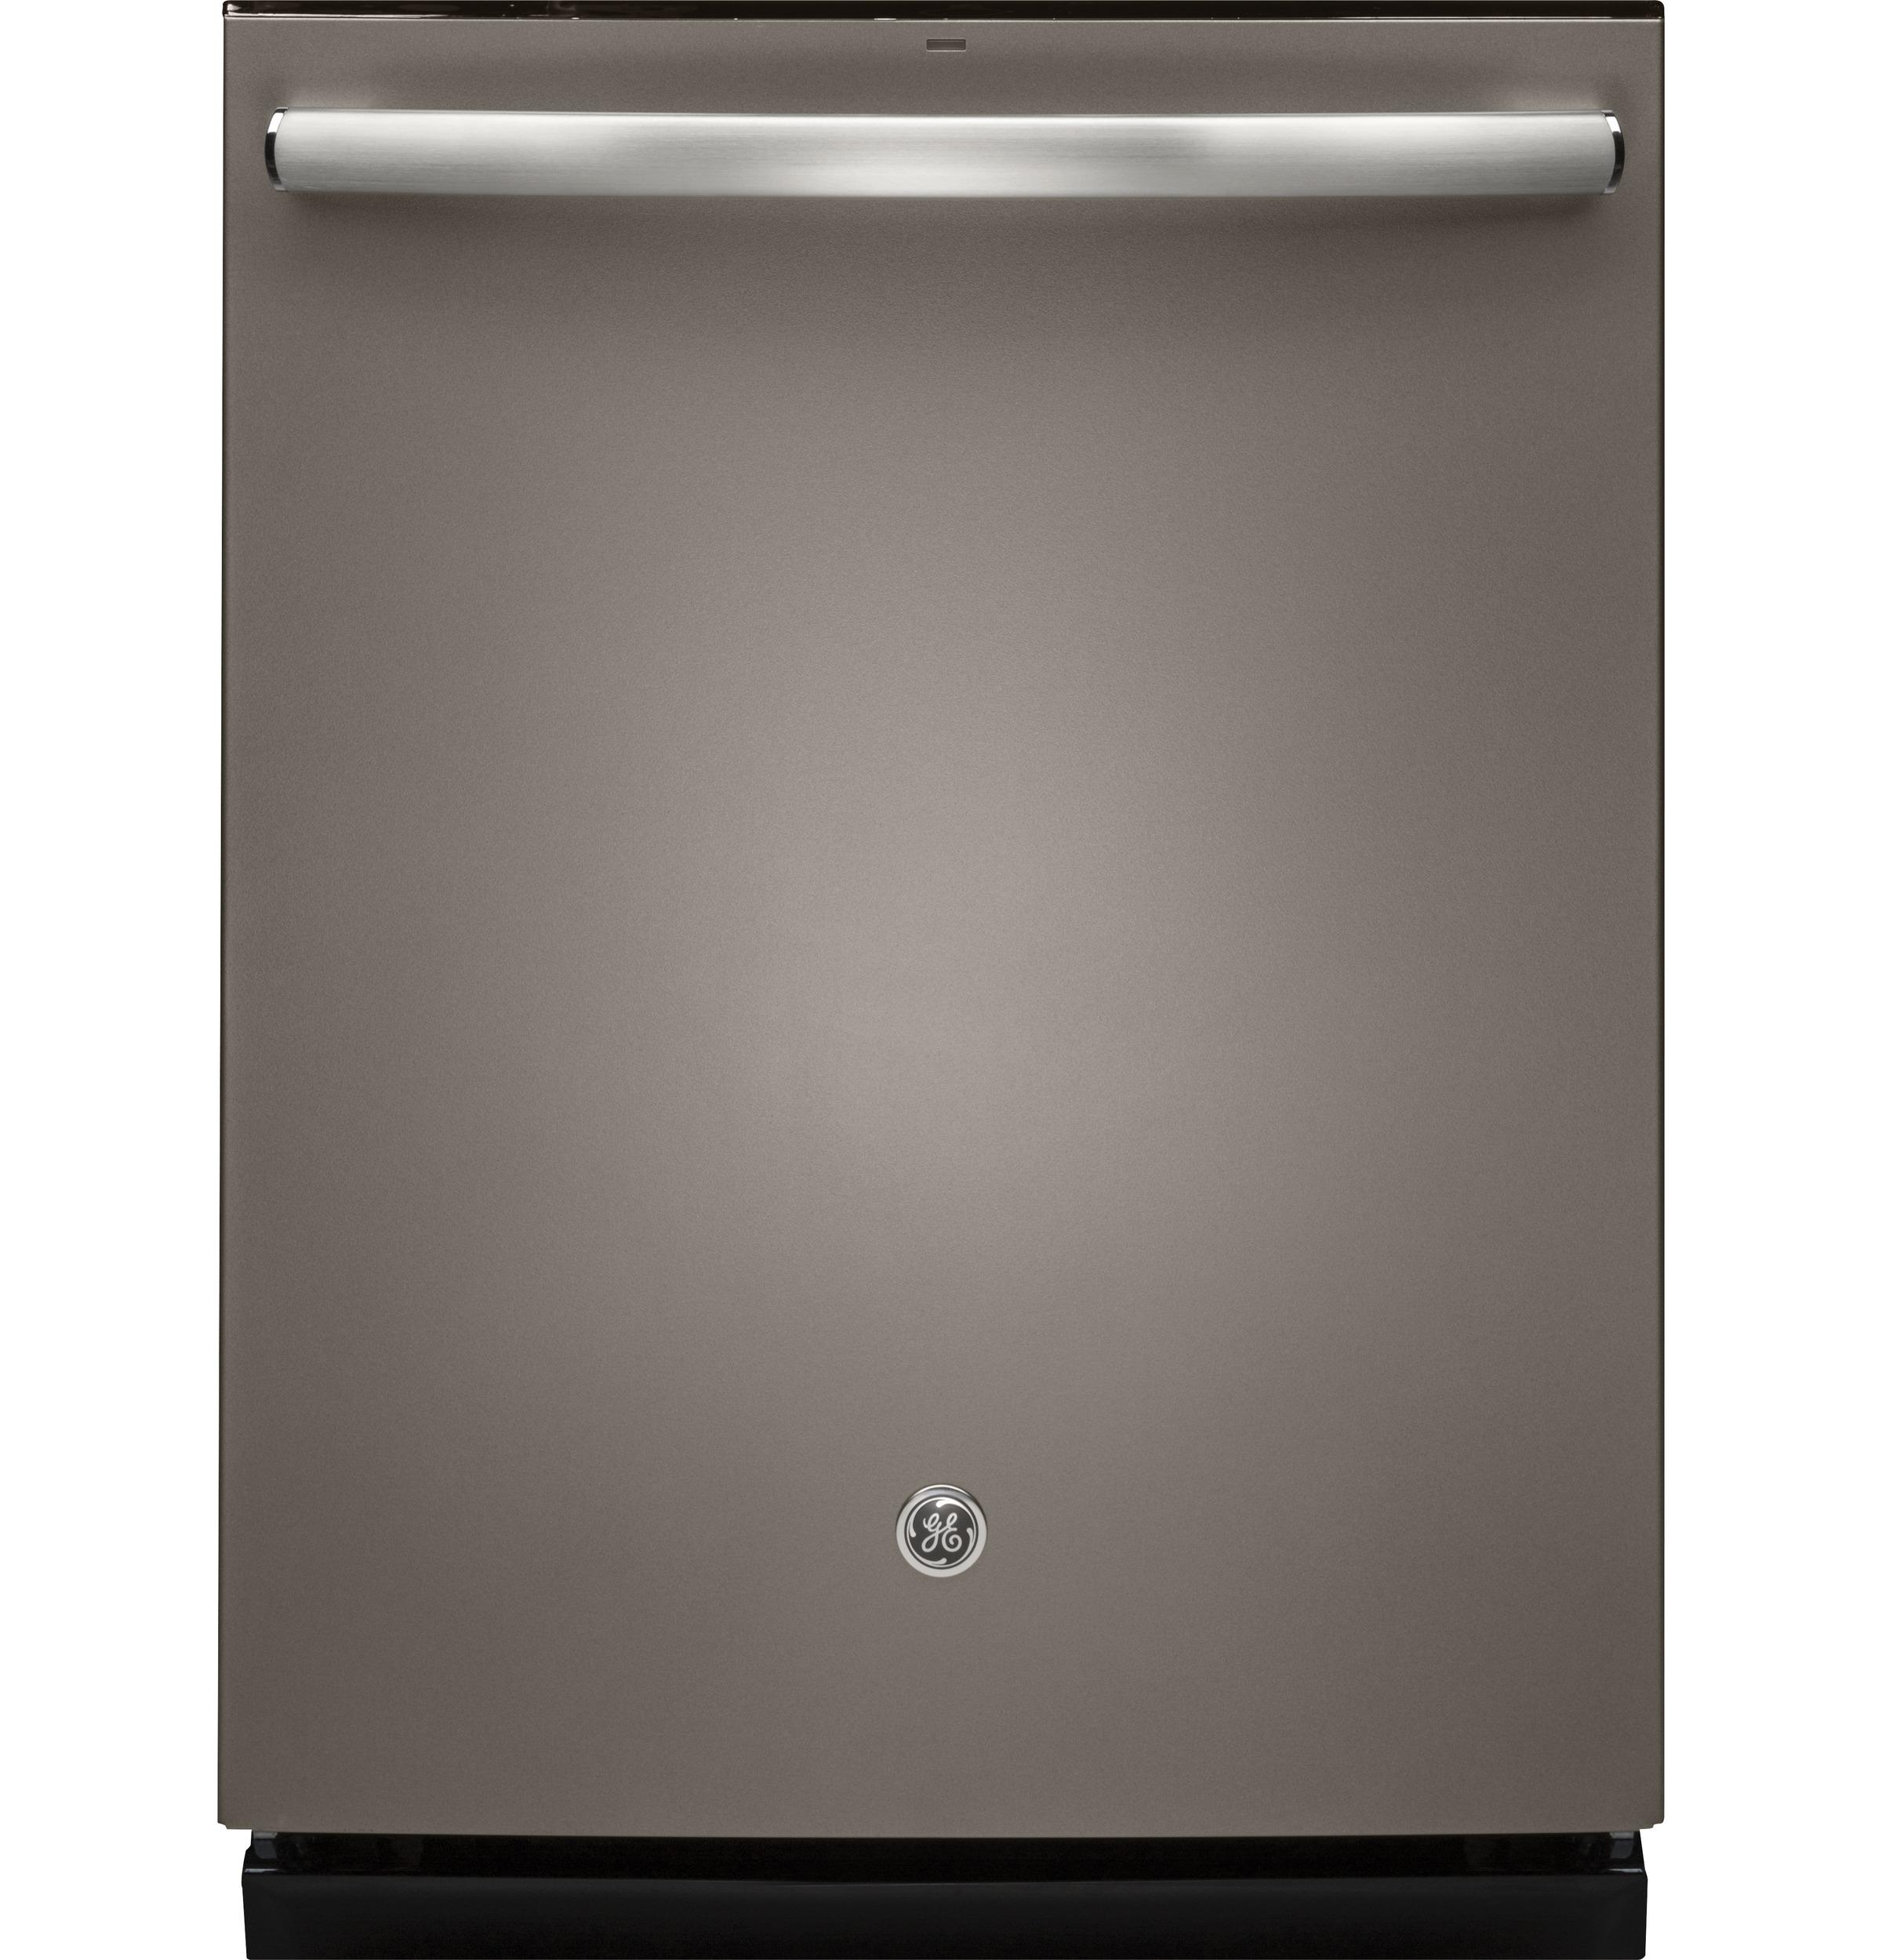 Ge appliances ge stainless steel interior dishwasher - Dishwasher stainless steel interior ...